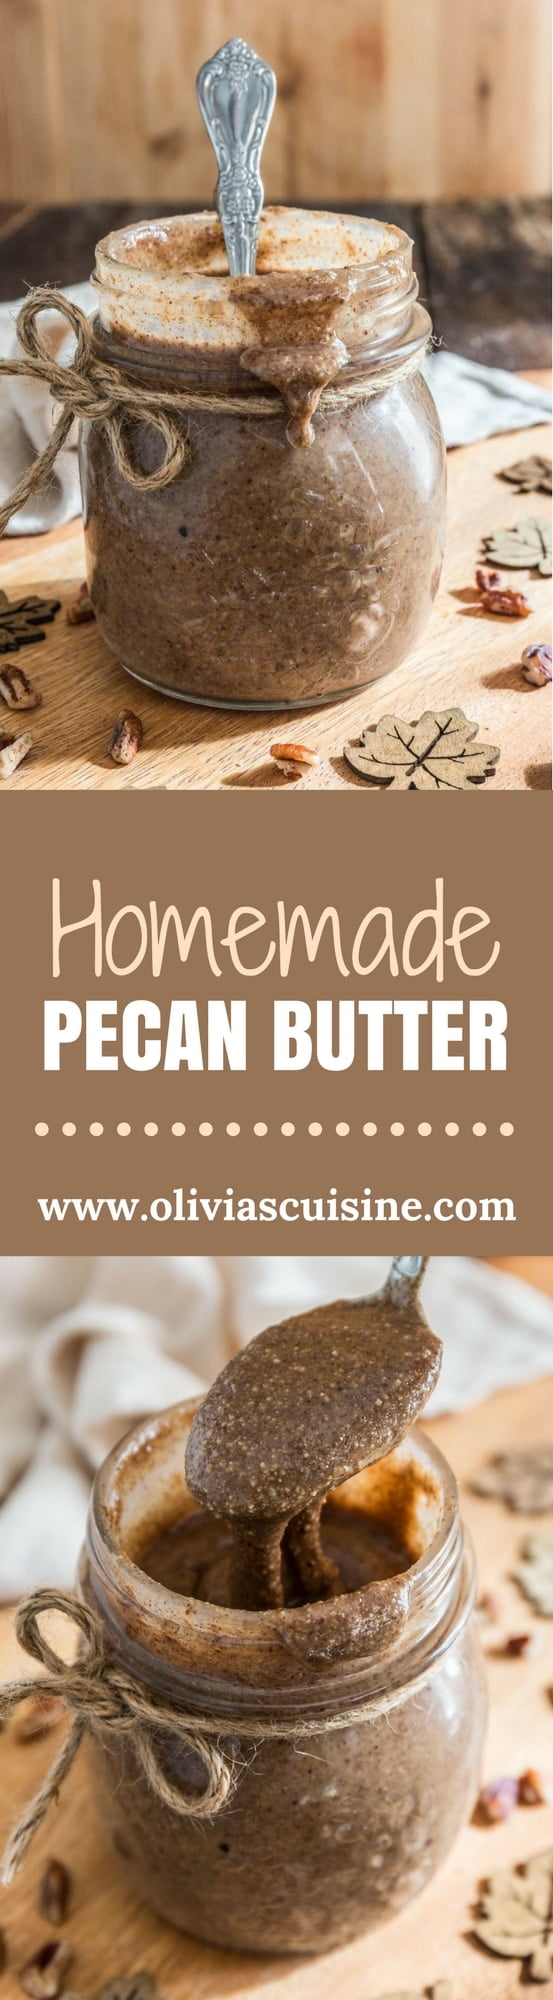 Homemade Pecan Butter | www.oliviascuisine.com | Why pay the big bucks for the store stuff when you can make your own Pecan Butter at home? Creamy, delicious and slightly spiced with some cinnamon. Perfect on toast, slathered on top of pancakes or waffles, added to smoothies or oatmeal and/or to give out as a holiday gift!